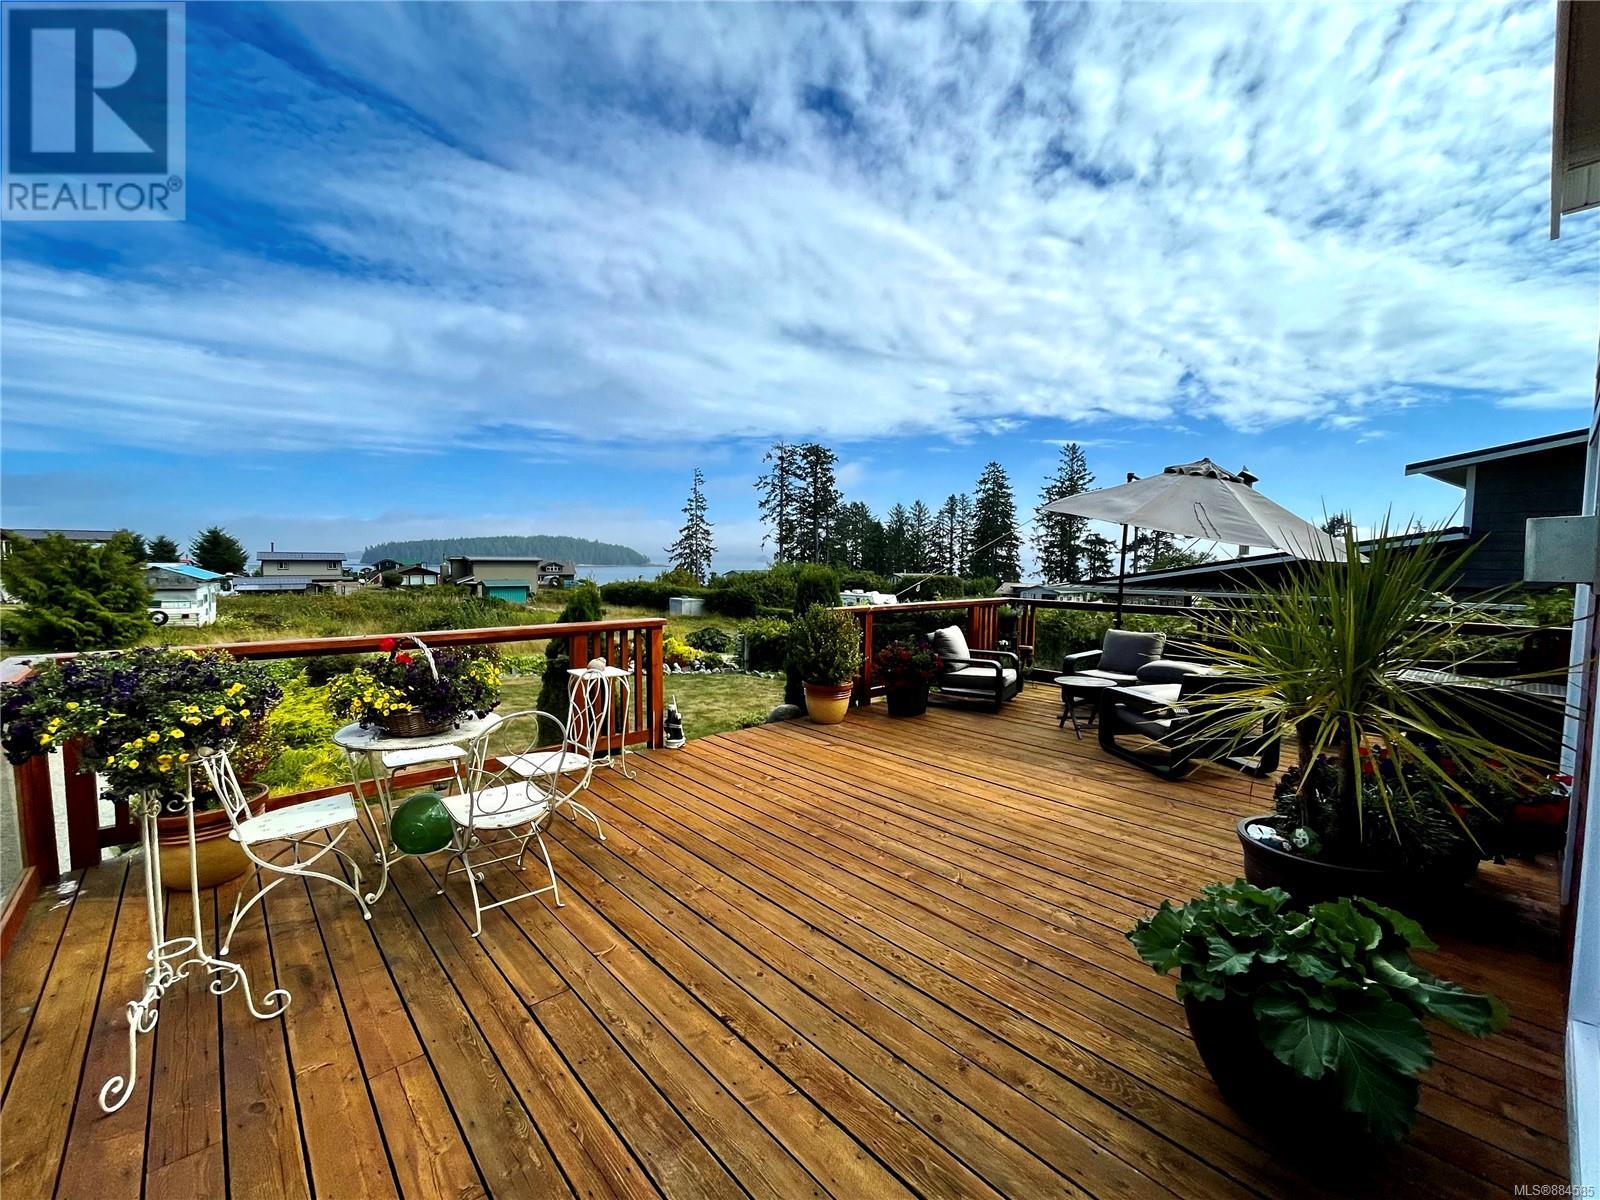 MLS® #884585 - Ucluelet House For sale Image #2